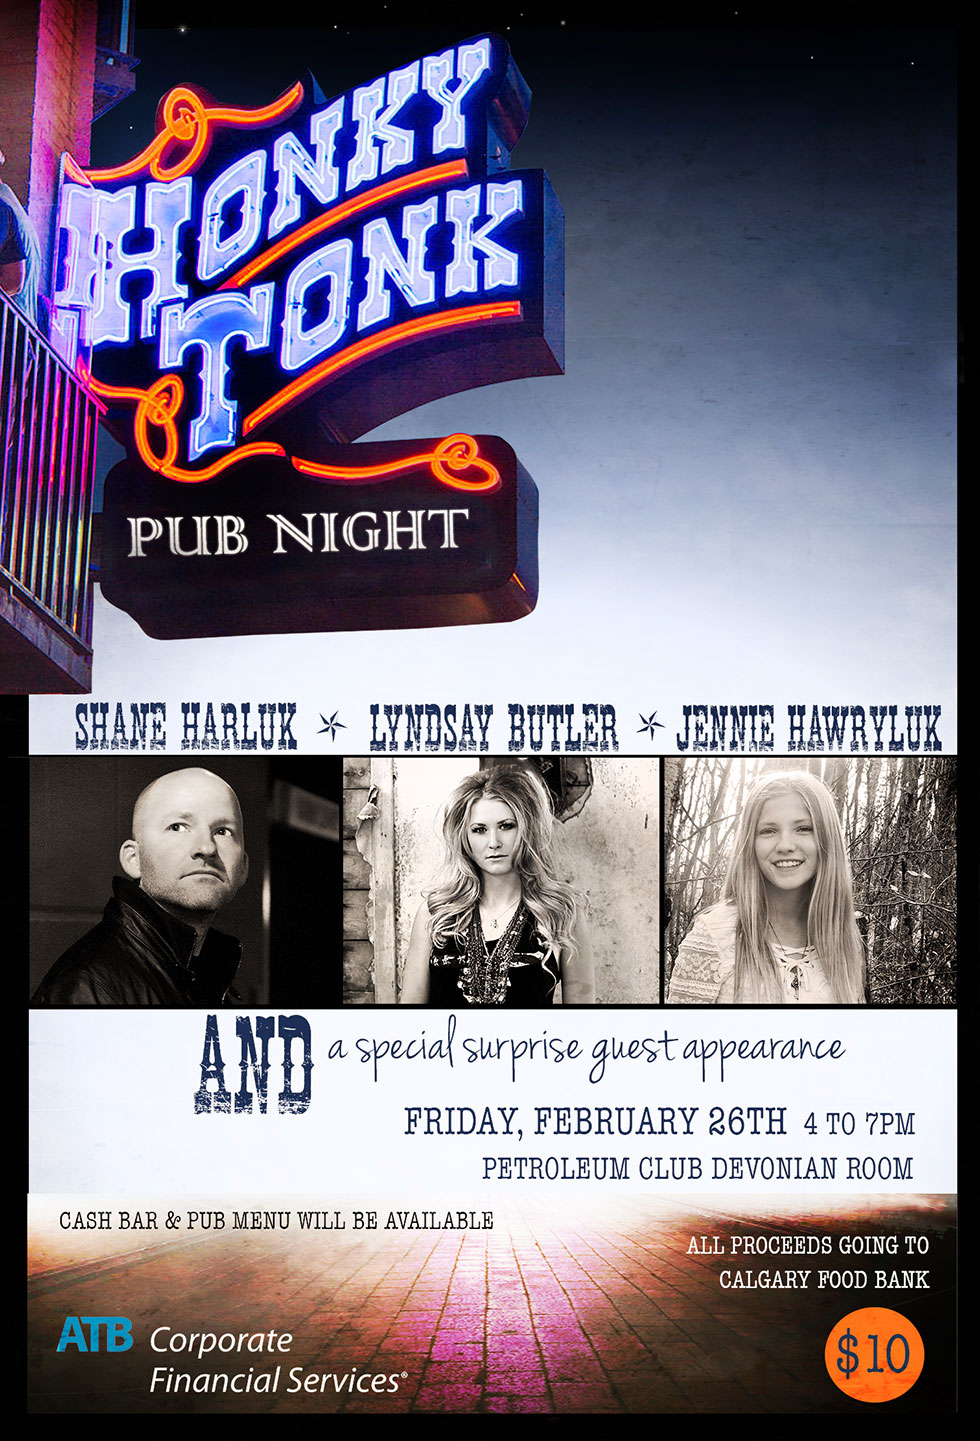 Honky Tonk Pub Night